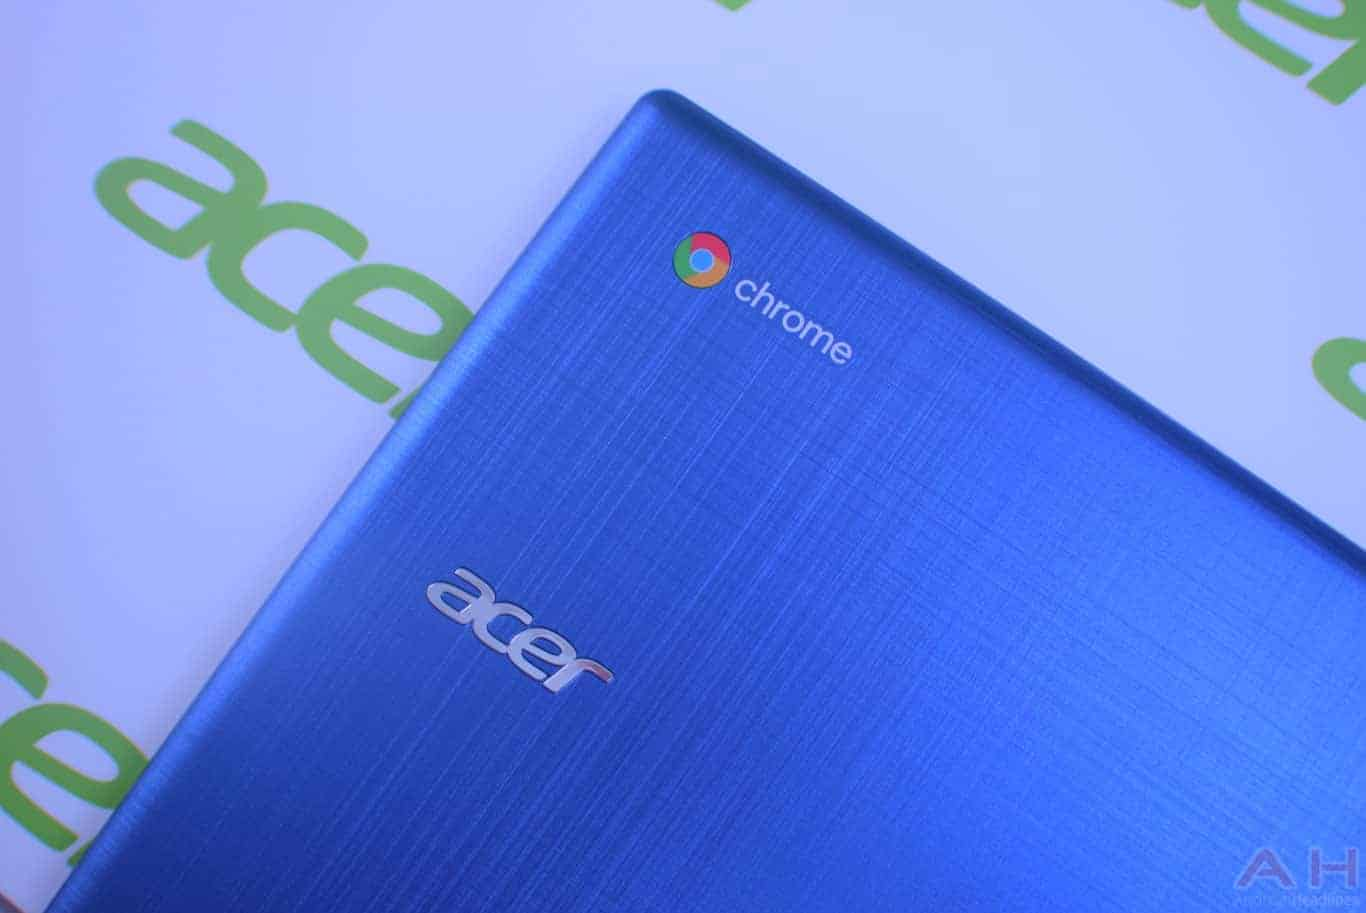 Acer Chromebook 11 CES 2018 AM AH 0030